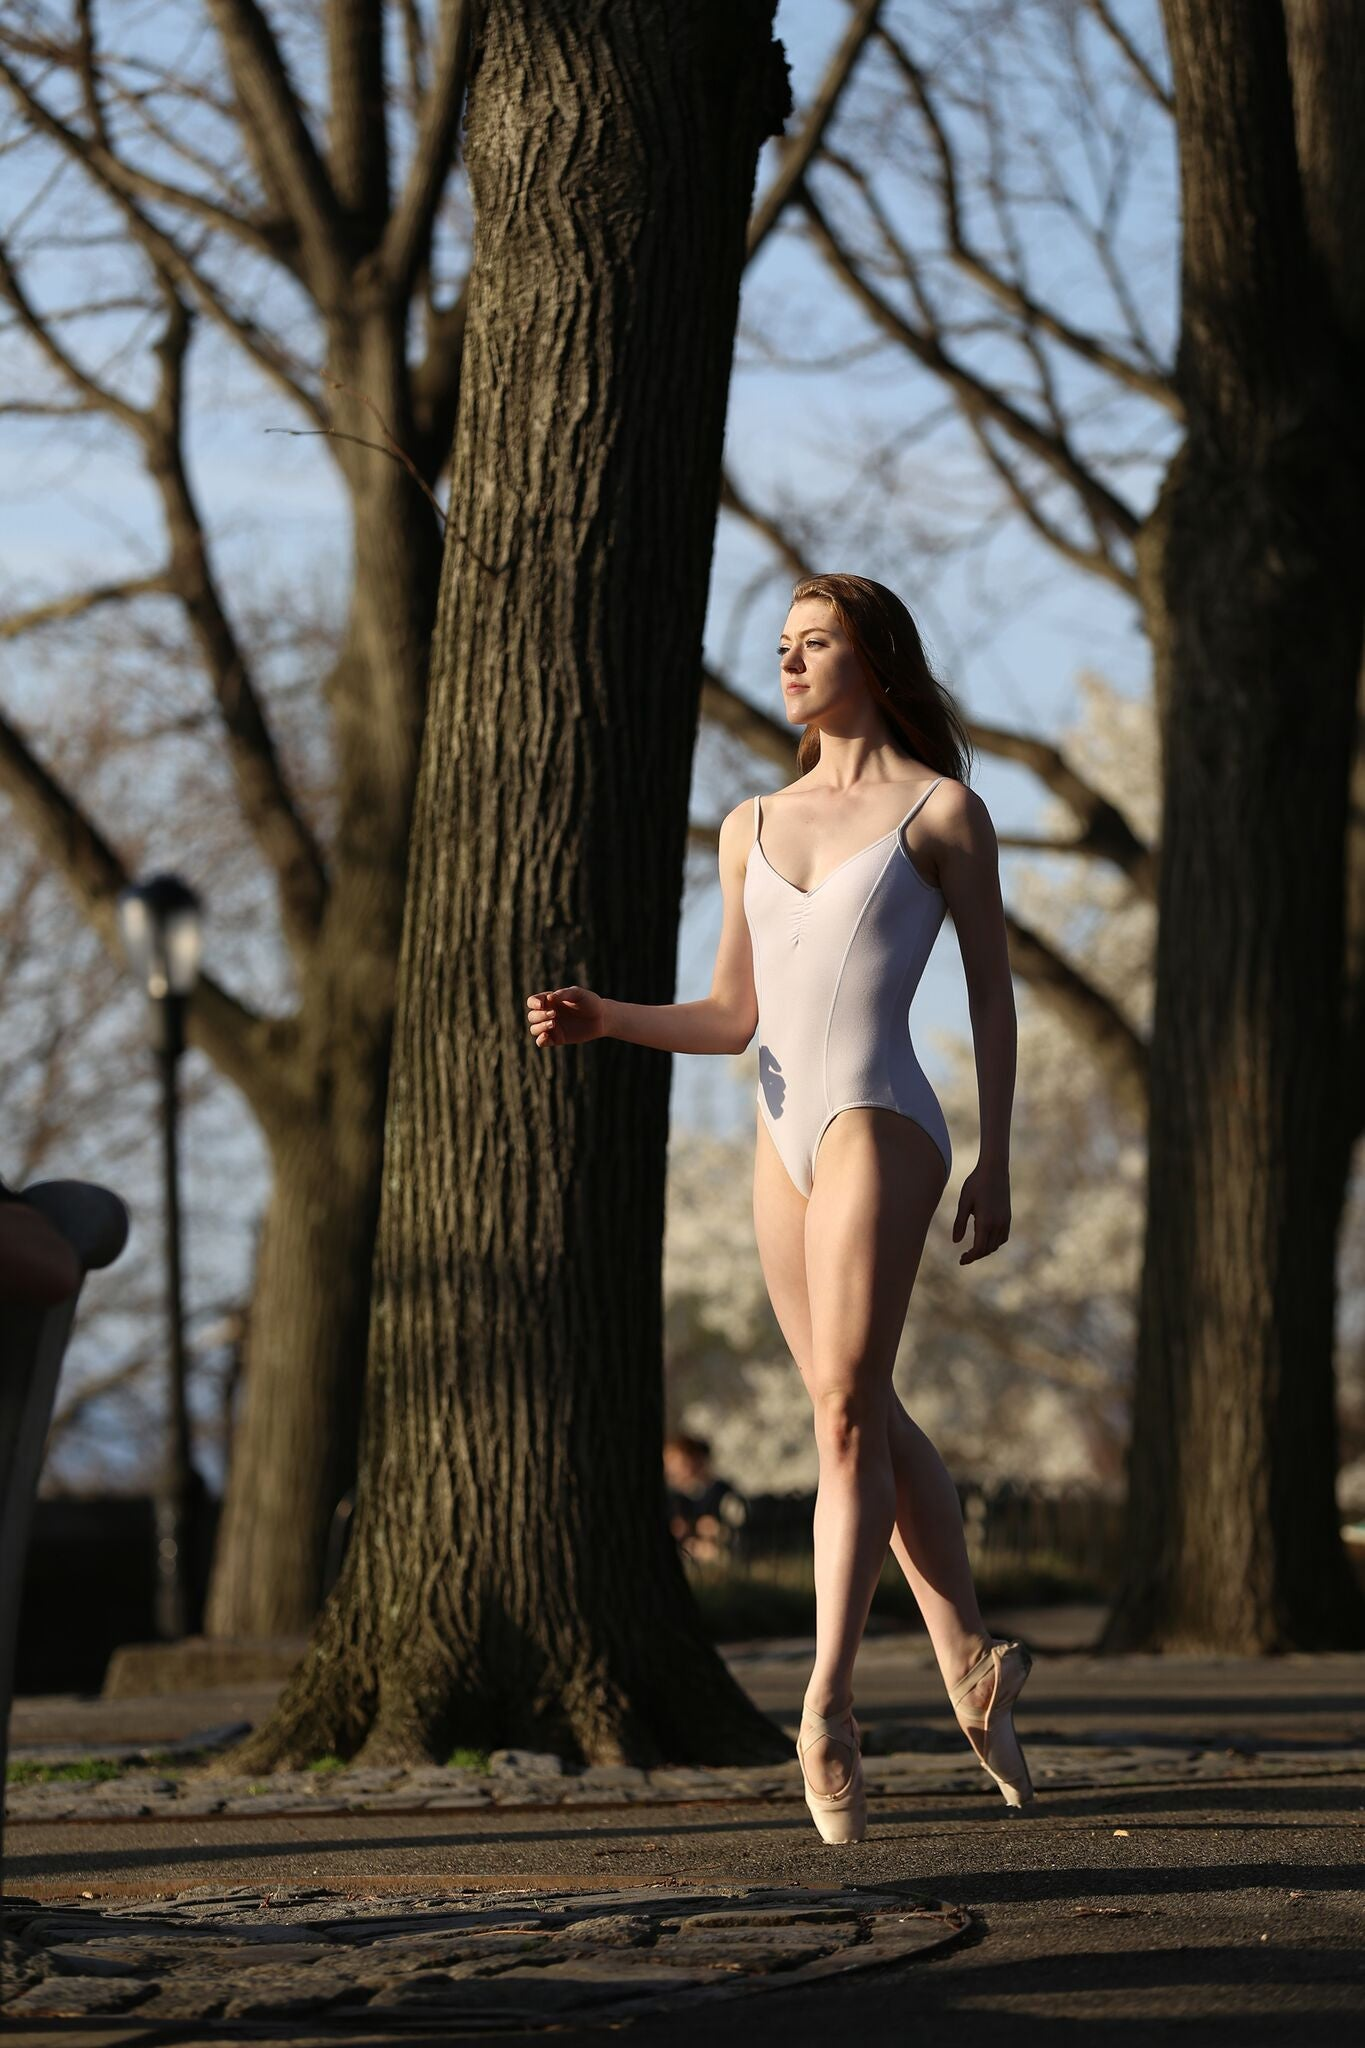 Courtney Shealy - American Ballet Theatre - BalletFriends